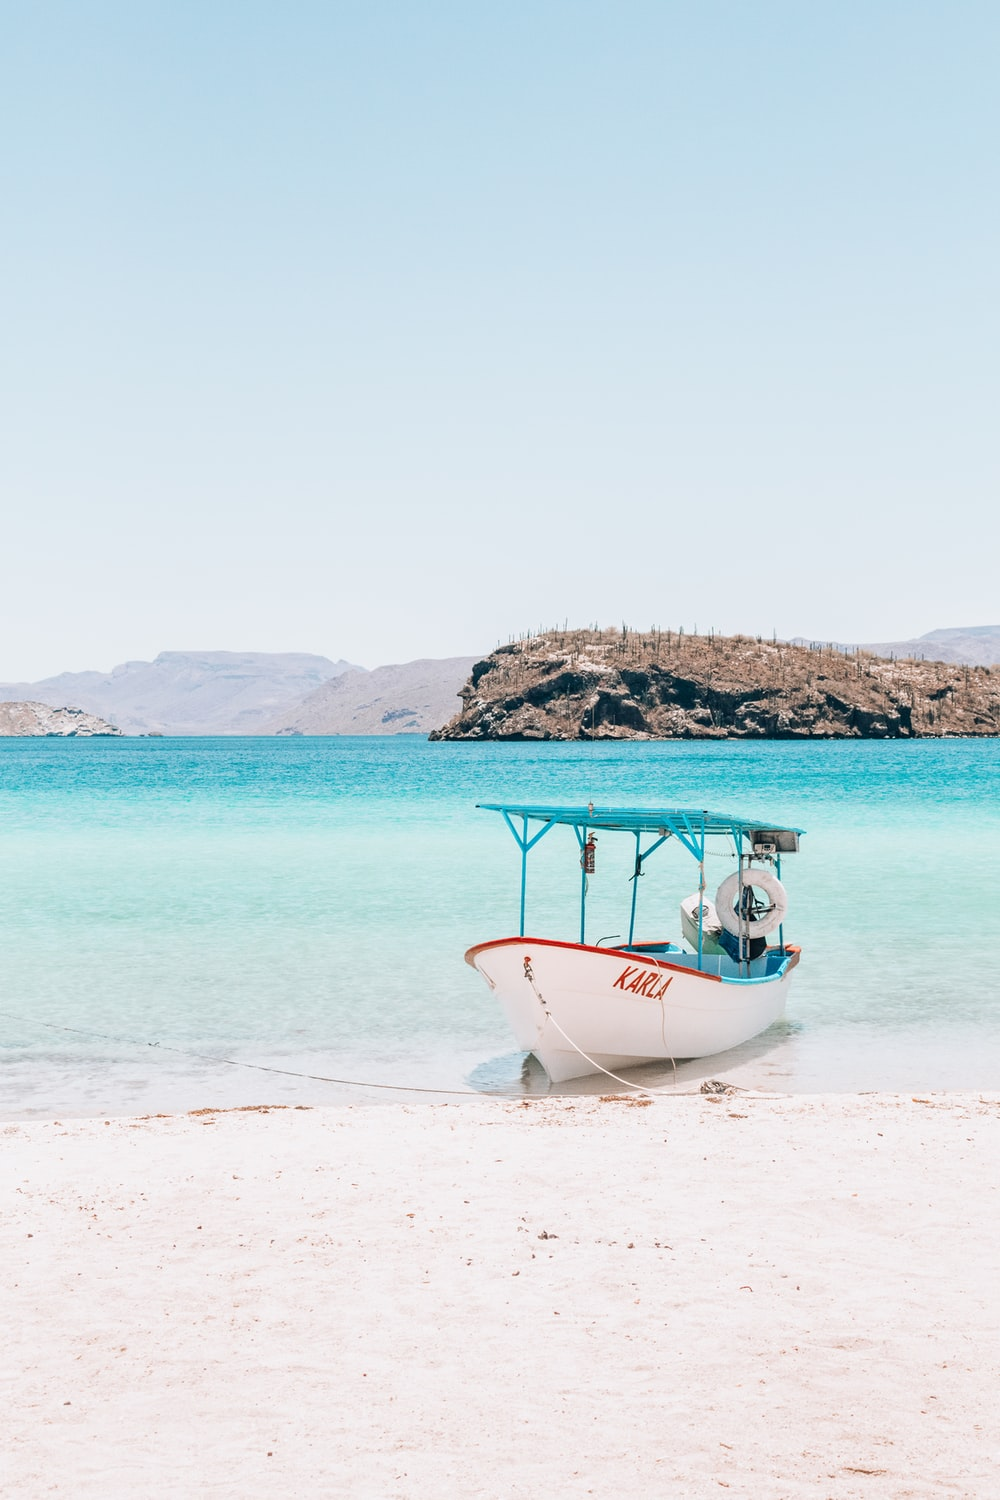 person riding on white boat on seashore